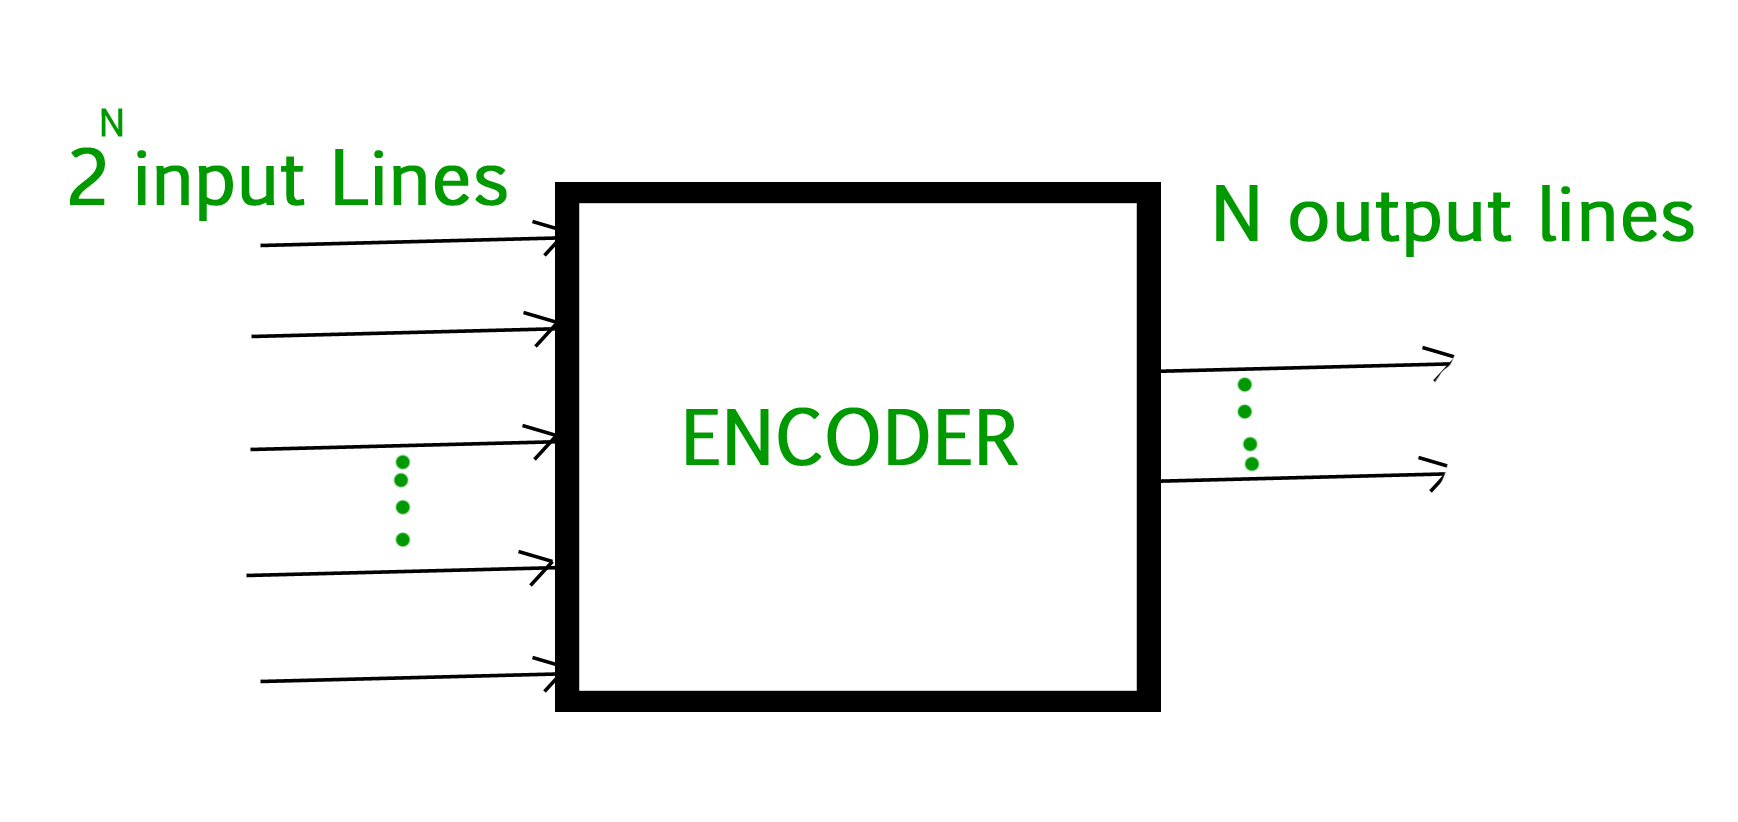 The Basic Circuit Is Same As Manual Design Except A 10bit Digital Logic Encoder Geeksforgeeks It Will Produce Binary Code Equivalent To Input Which Active High Therefore Encodes 2n Lines With N Bits